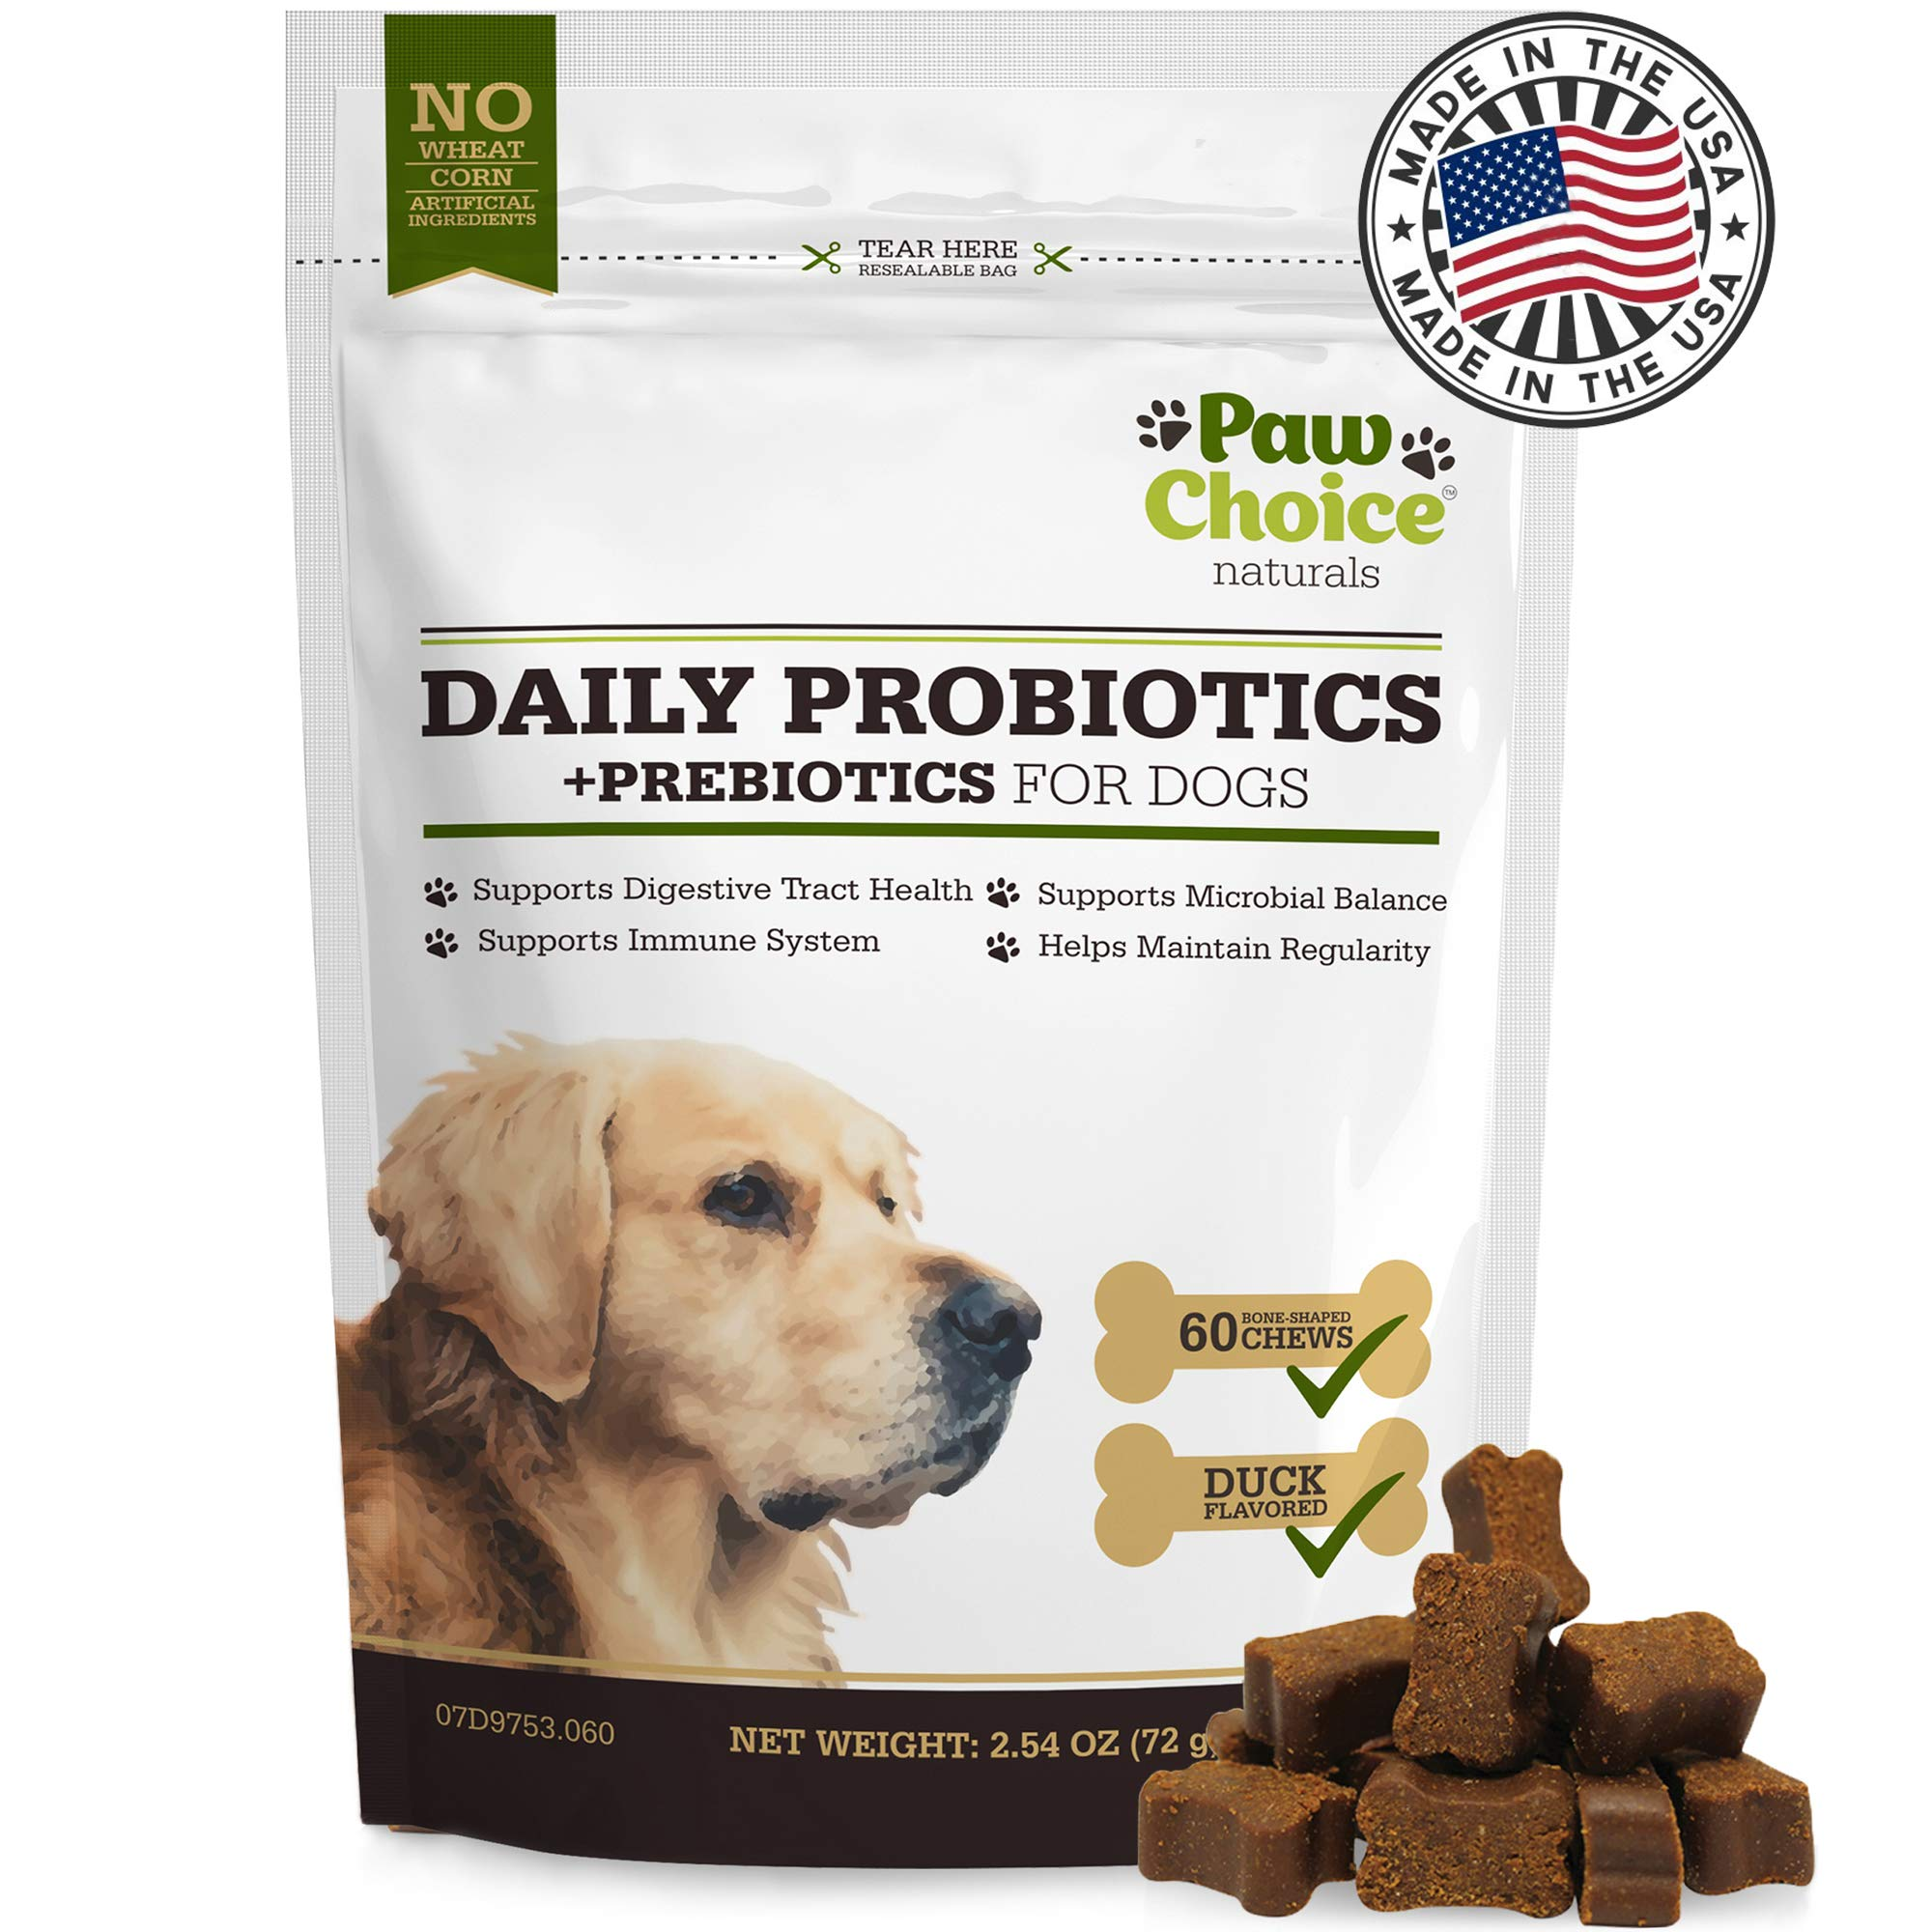 Probiotics for Dogs with Prebiotics - Daily Chews for Digestion, Regularity, Diarrhea Relief, Plus Supports Immune System and Health - Natural Supplement and Treat Made in USA by Paw Choice